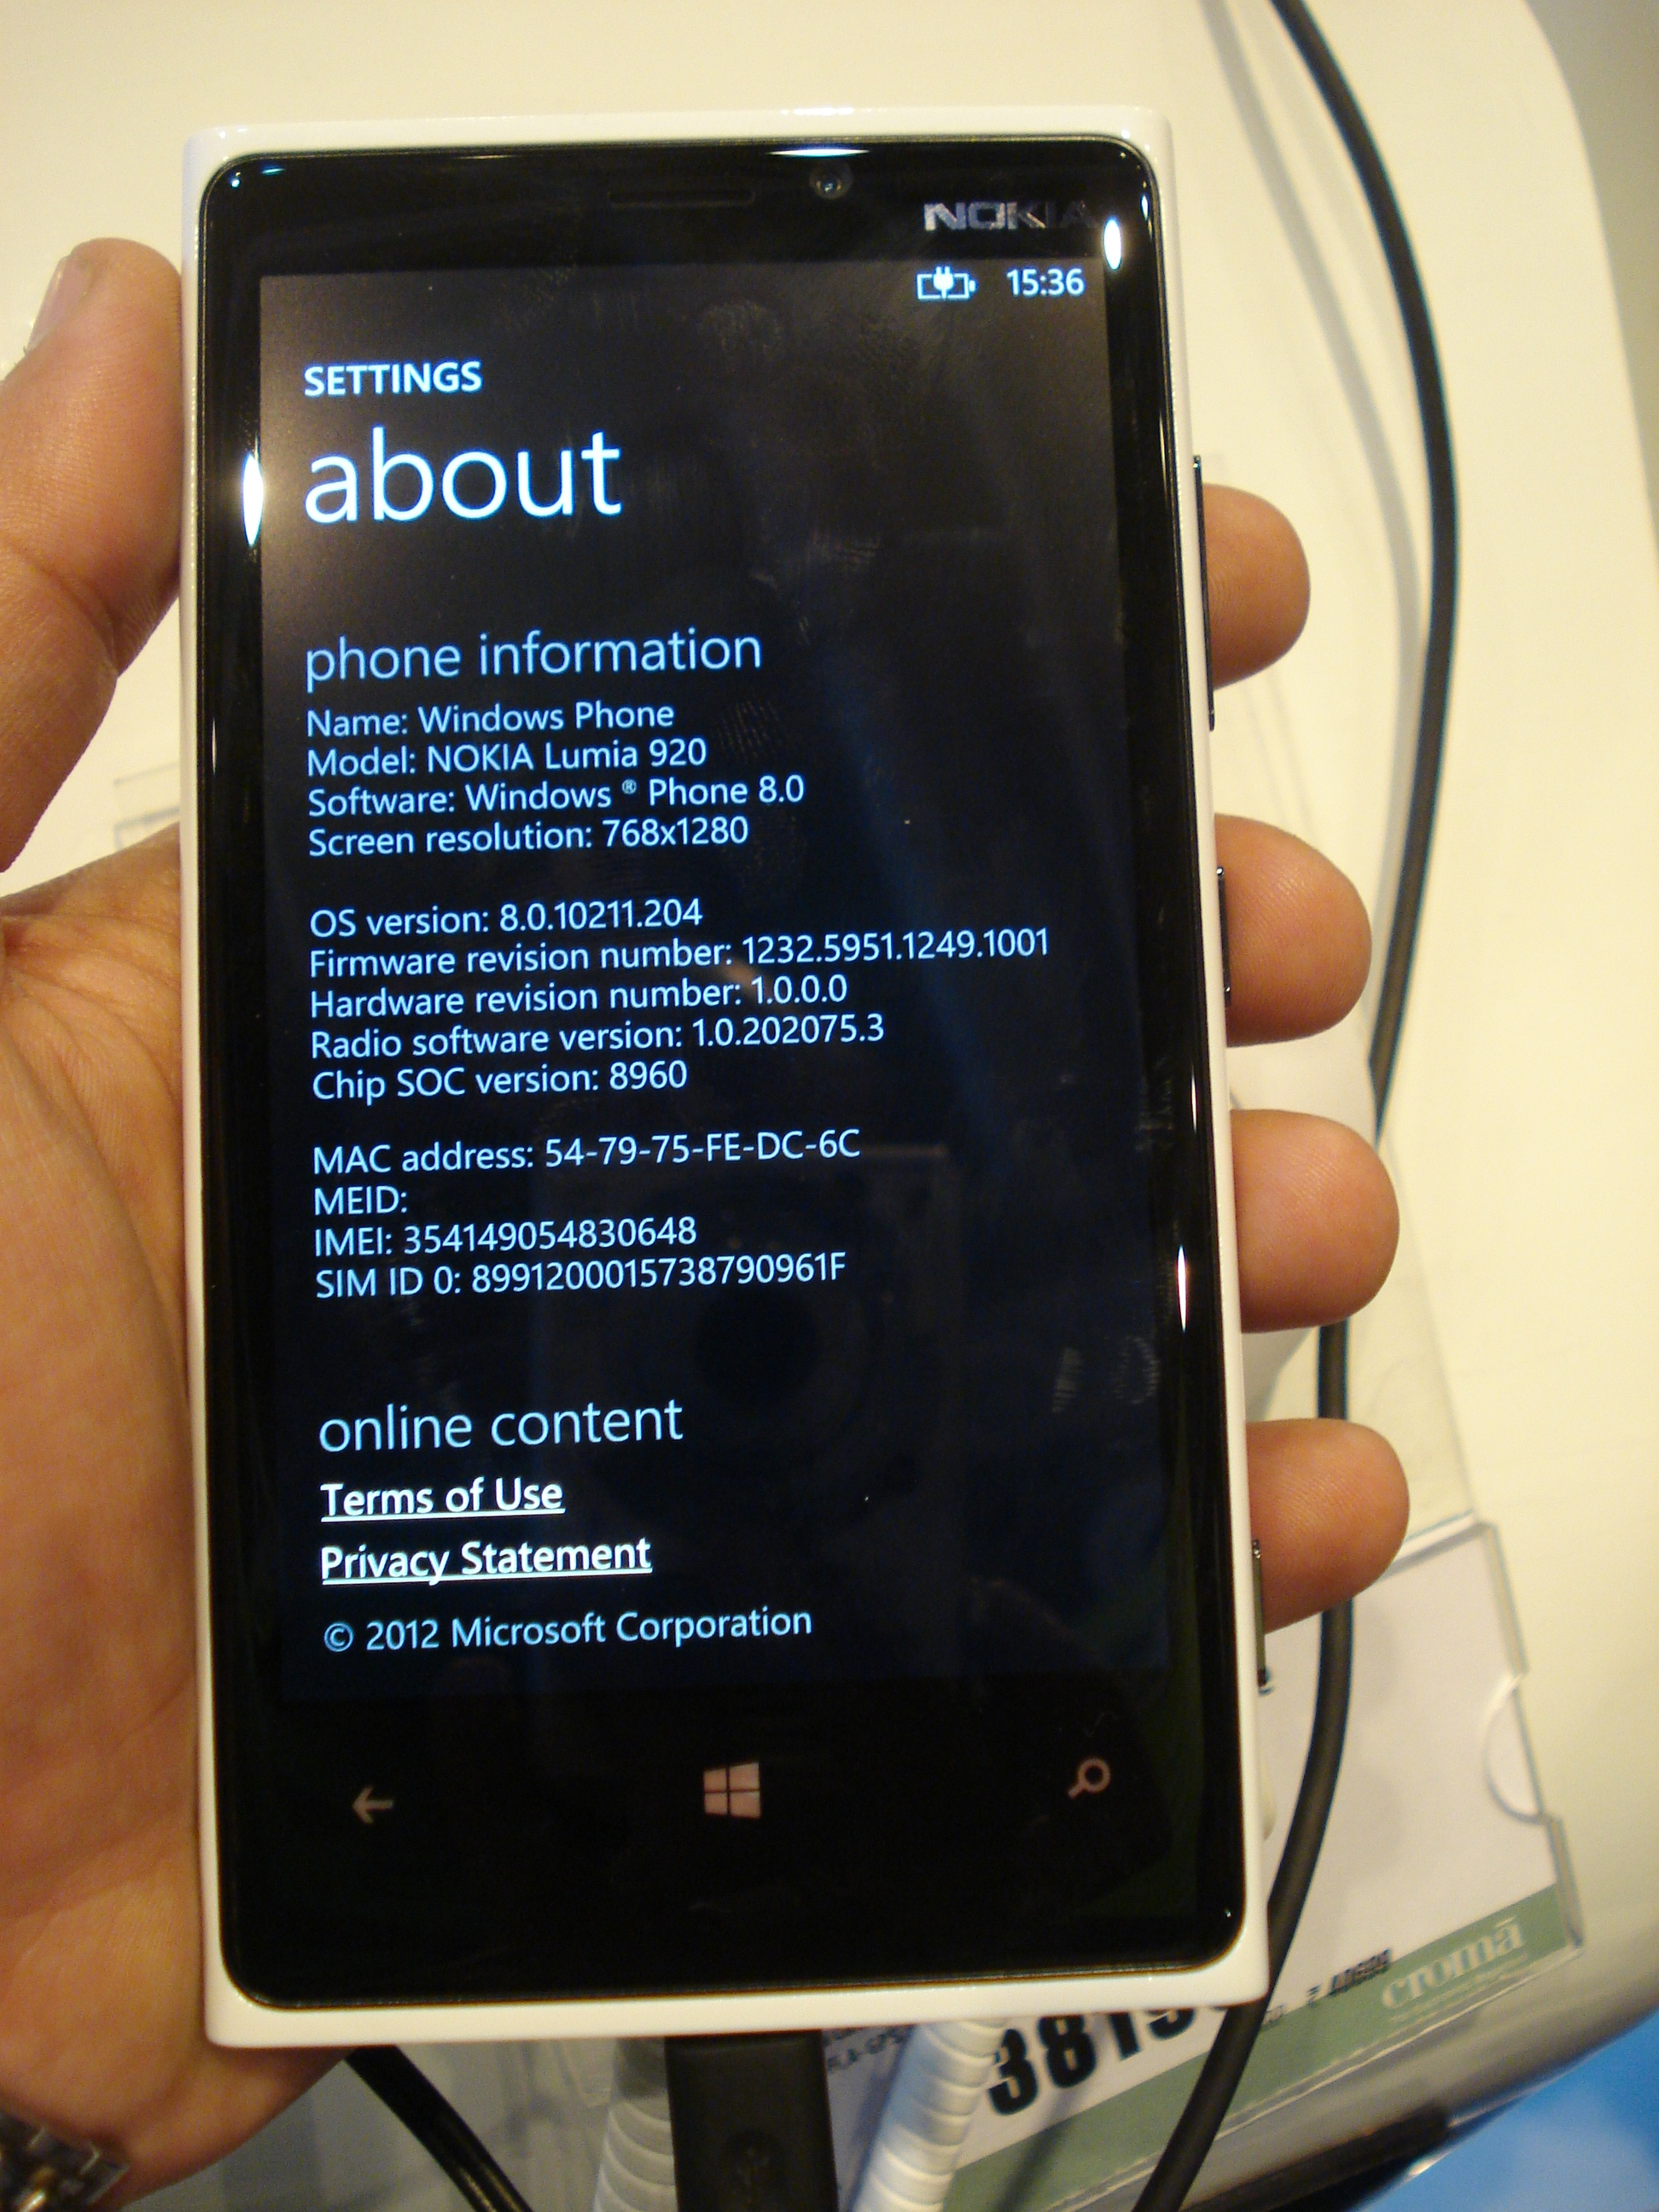 Nokia Lumia 920 Indian Version Comes With The Portico Update Pr 11 Touchscreen Dsc03314